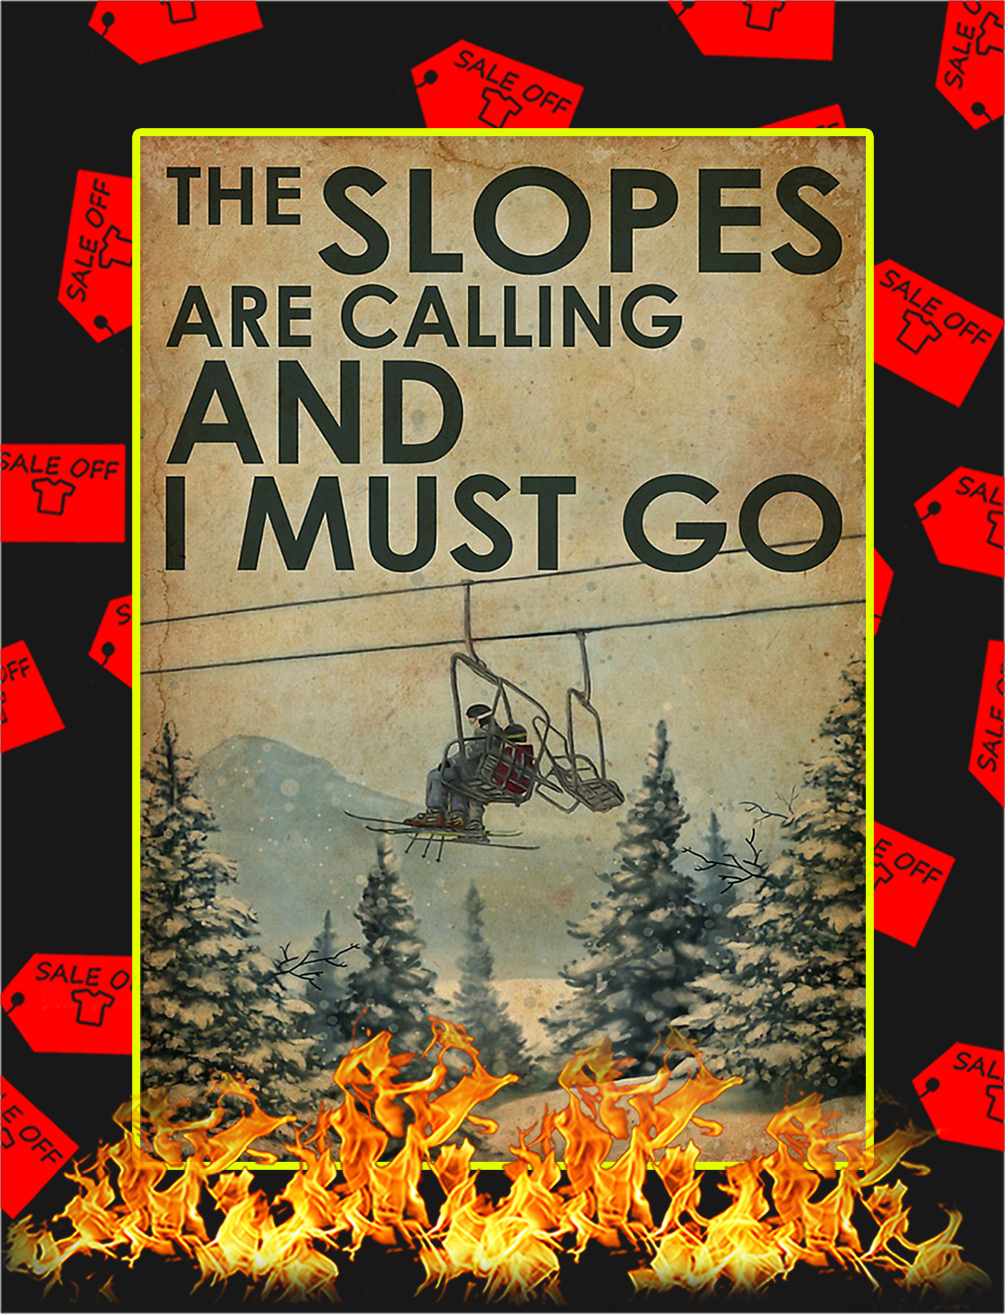 The Slopes Are Calling And I Must Go Poster - A4